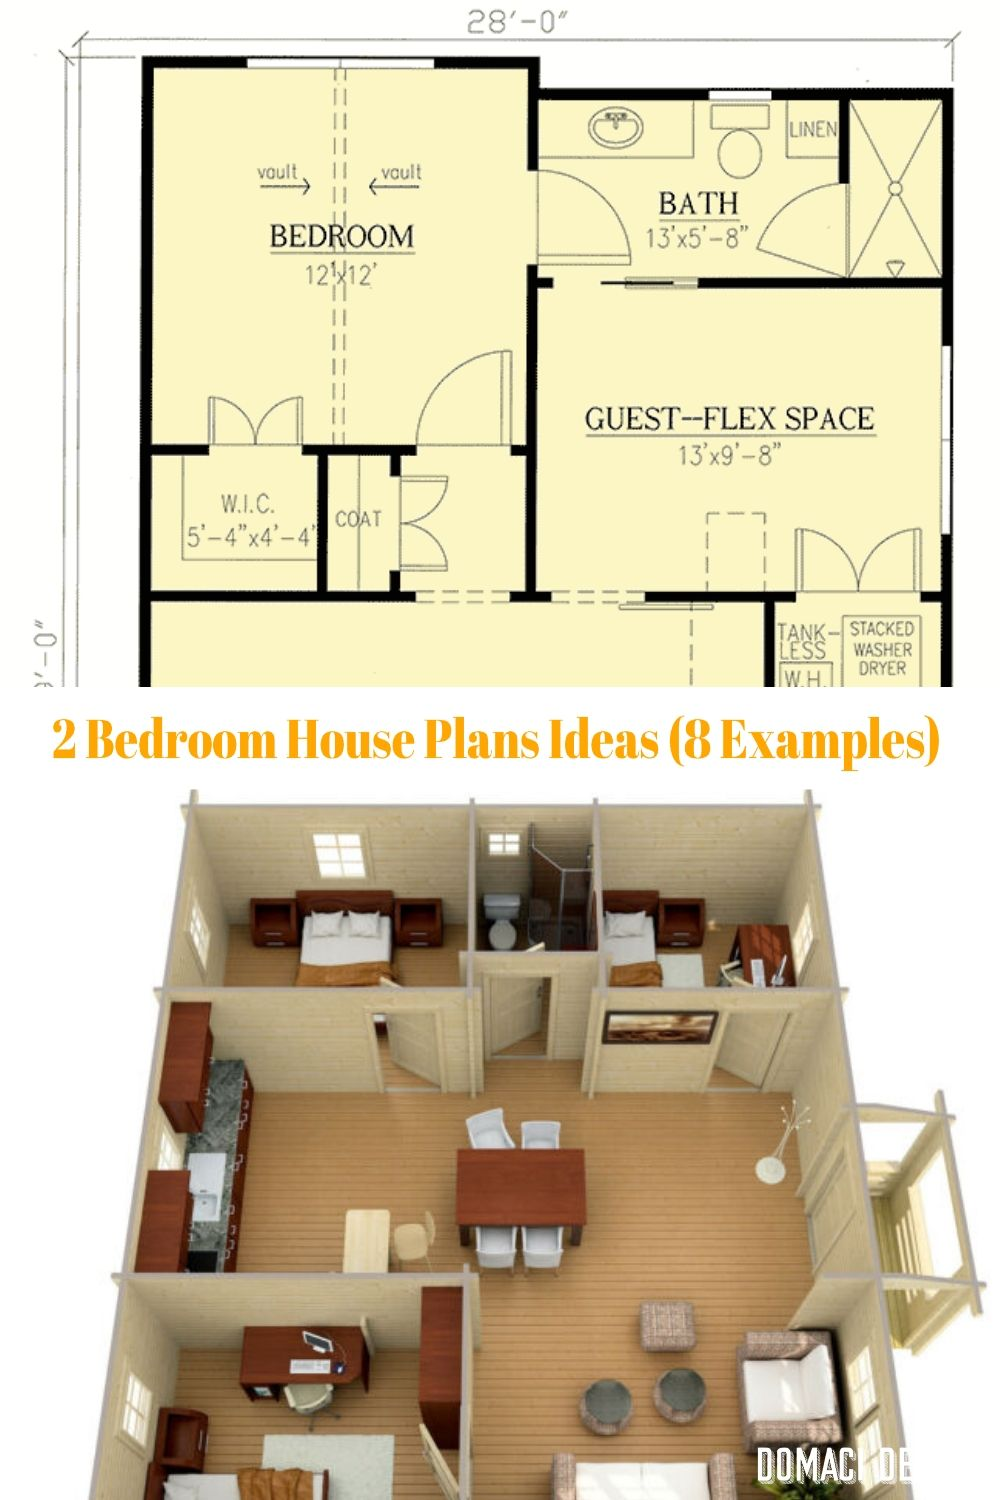 2 Bedroom House Plans Ideas 8 Examples Bedroom House Plans House Plans 2 Bedroom House Plans